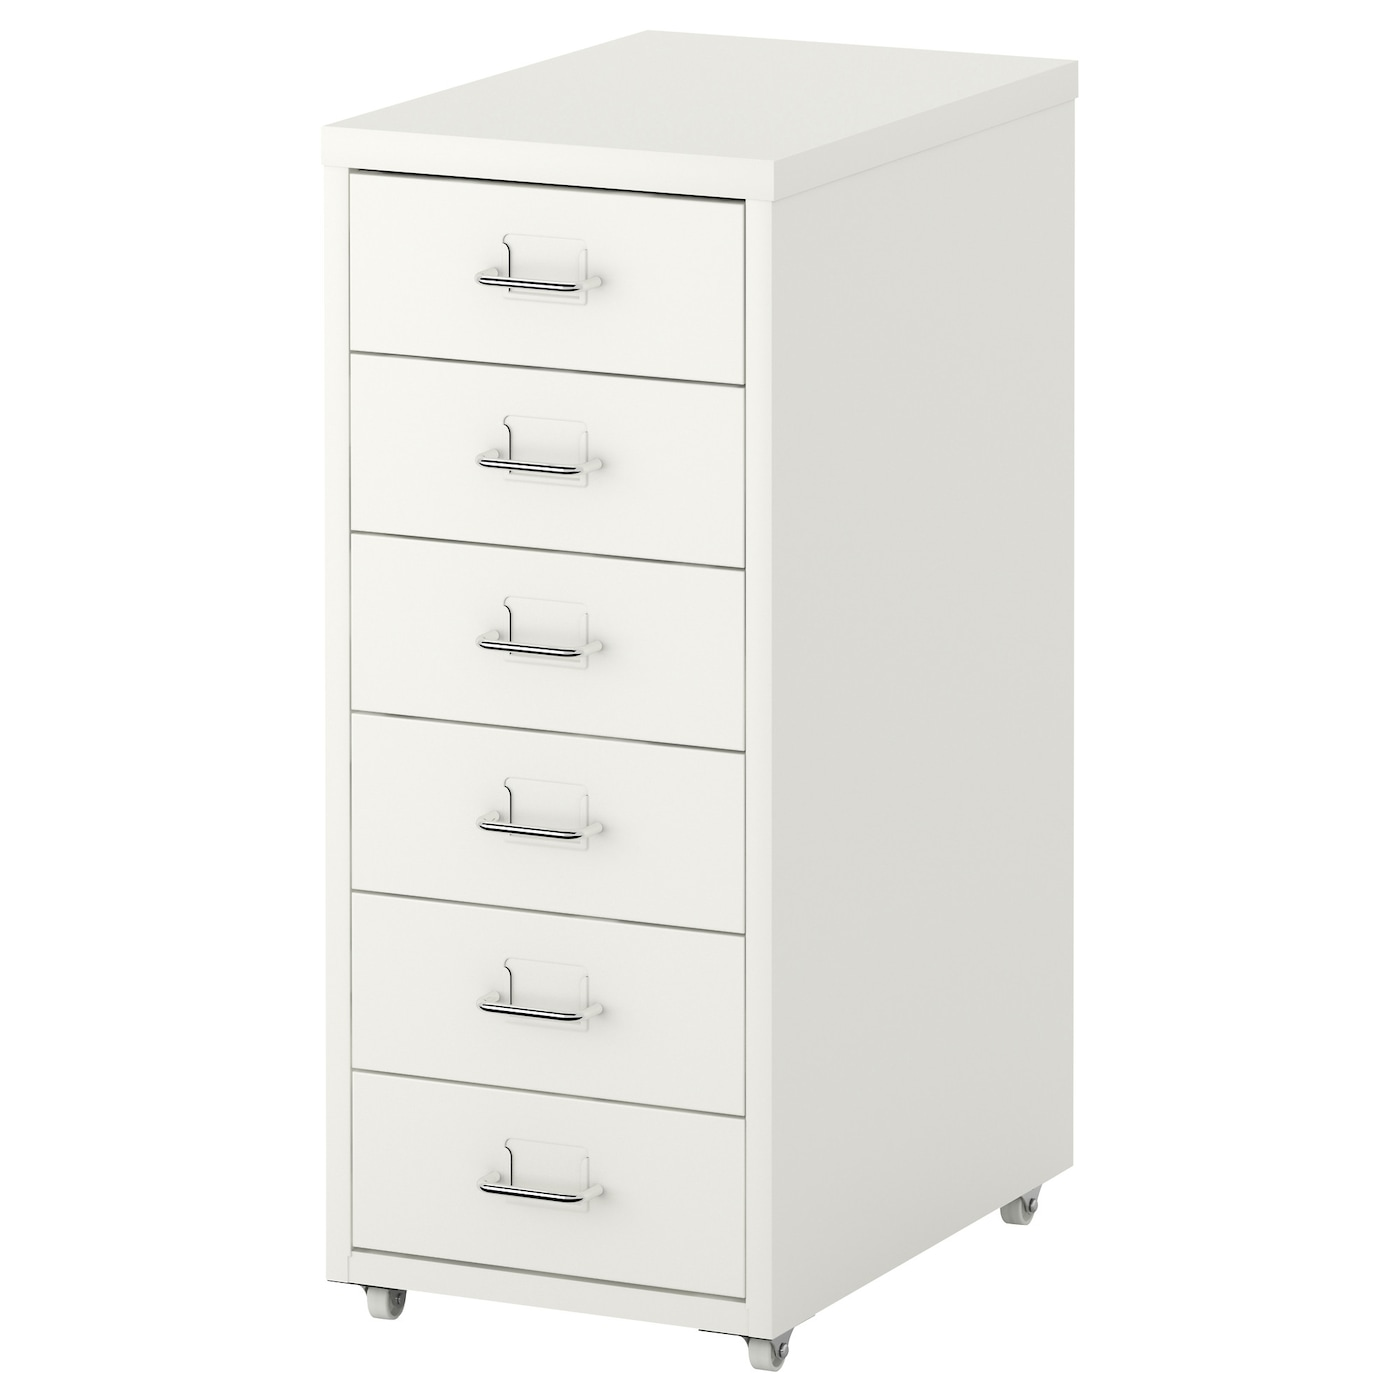 ikea helmer drawer unit on castors drawer stops prevent the drawer